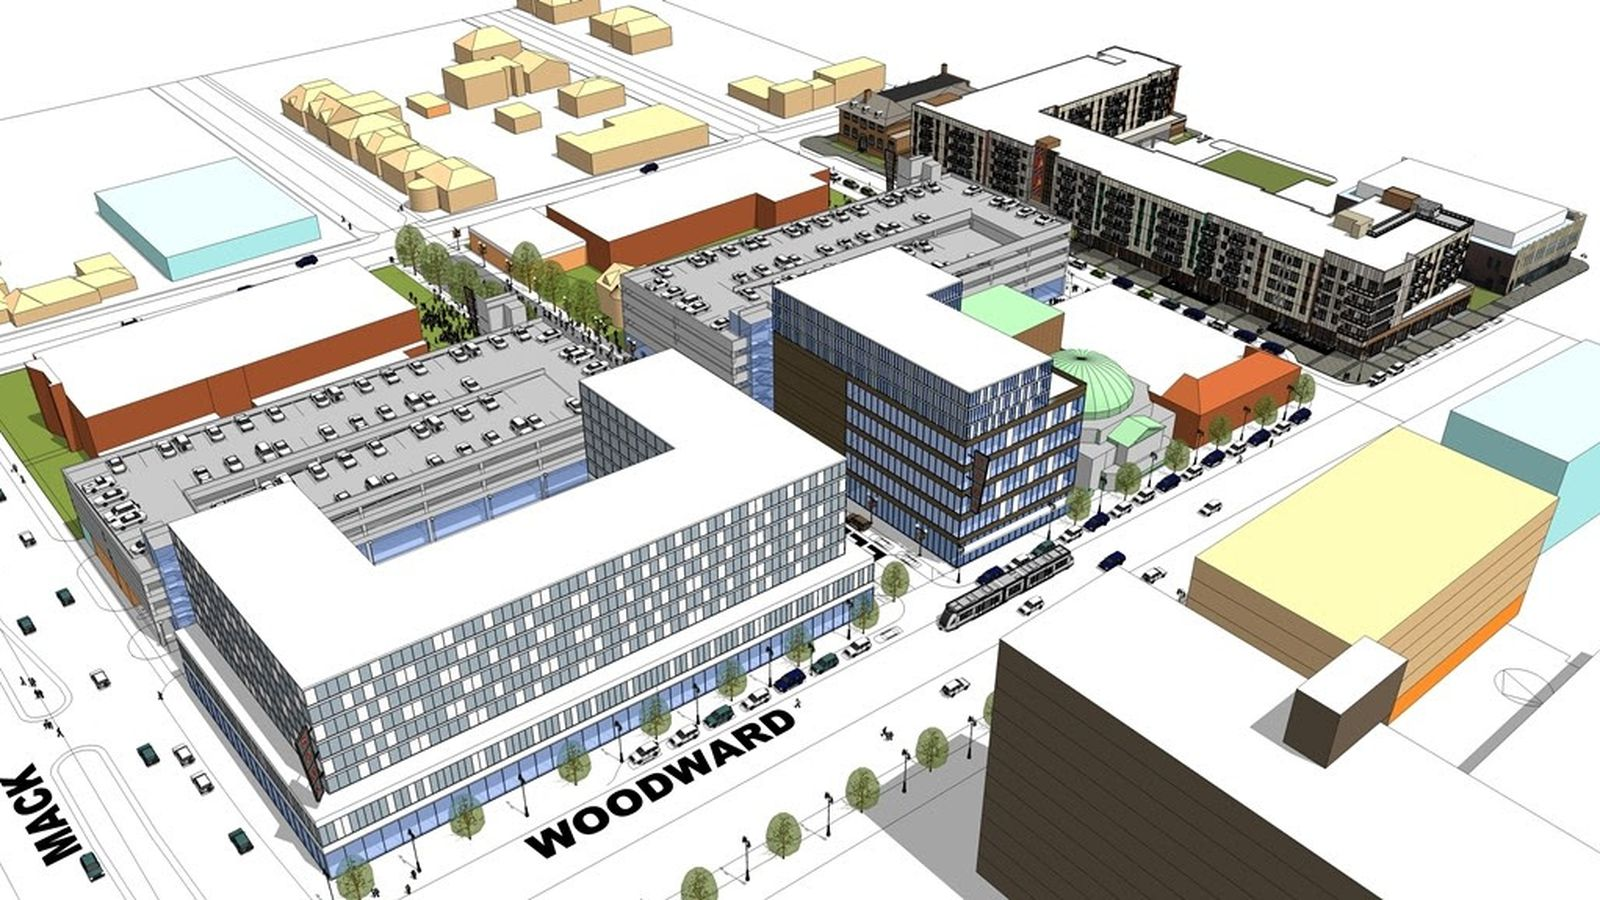 more details emerge for soma  south of mack avenue  development